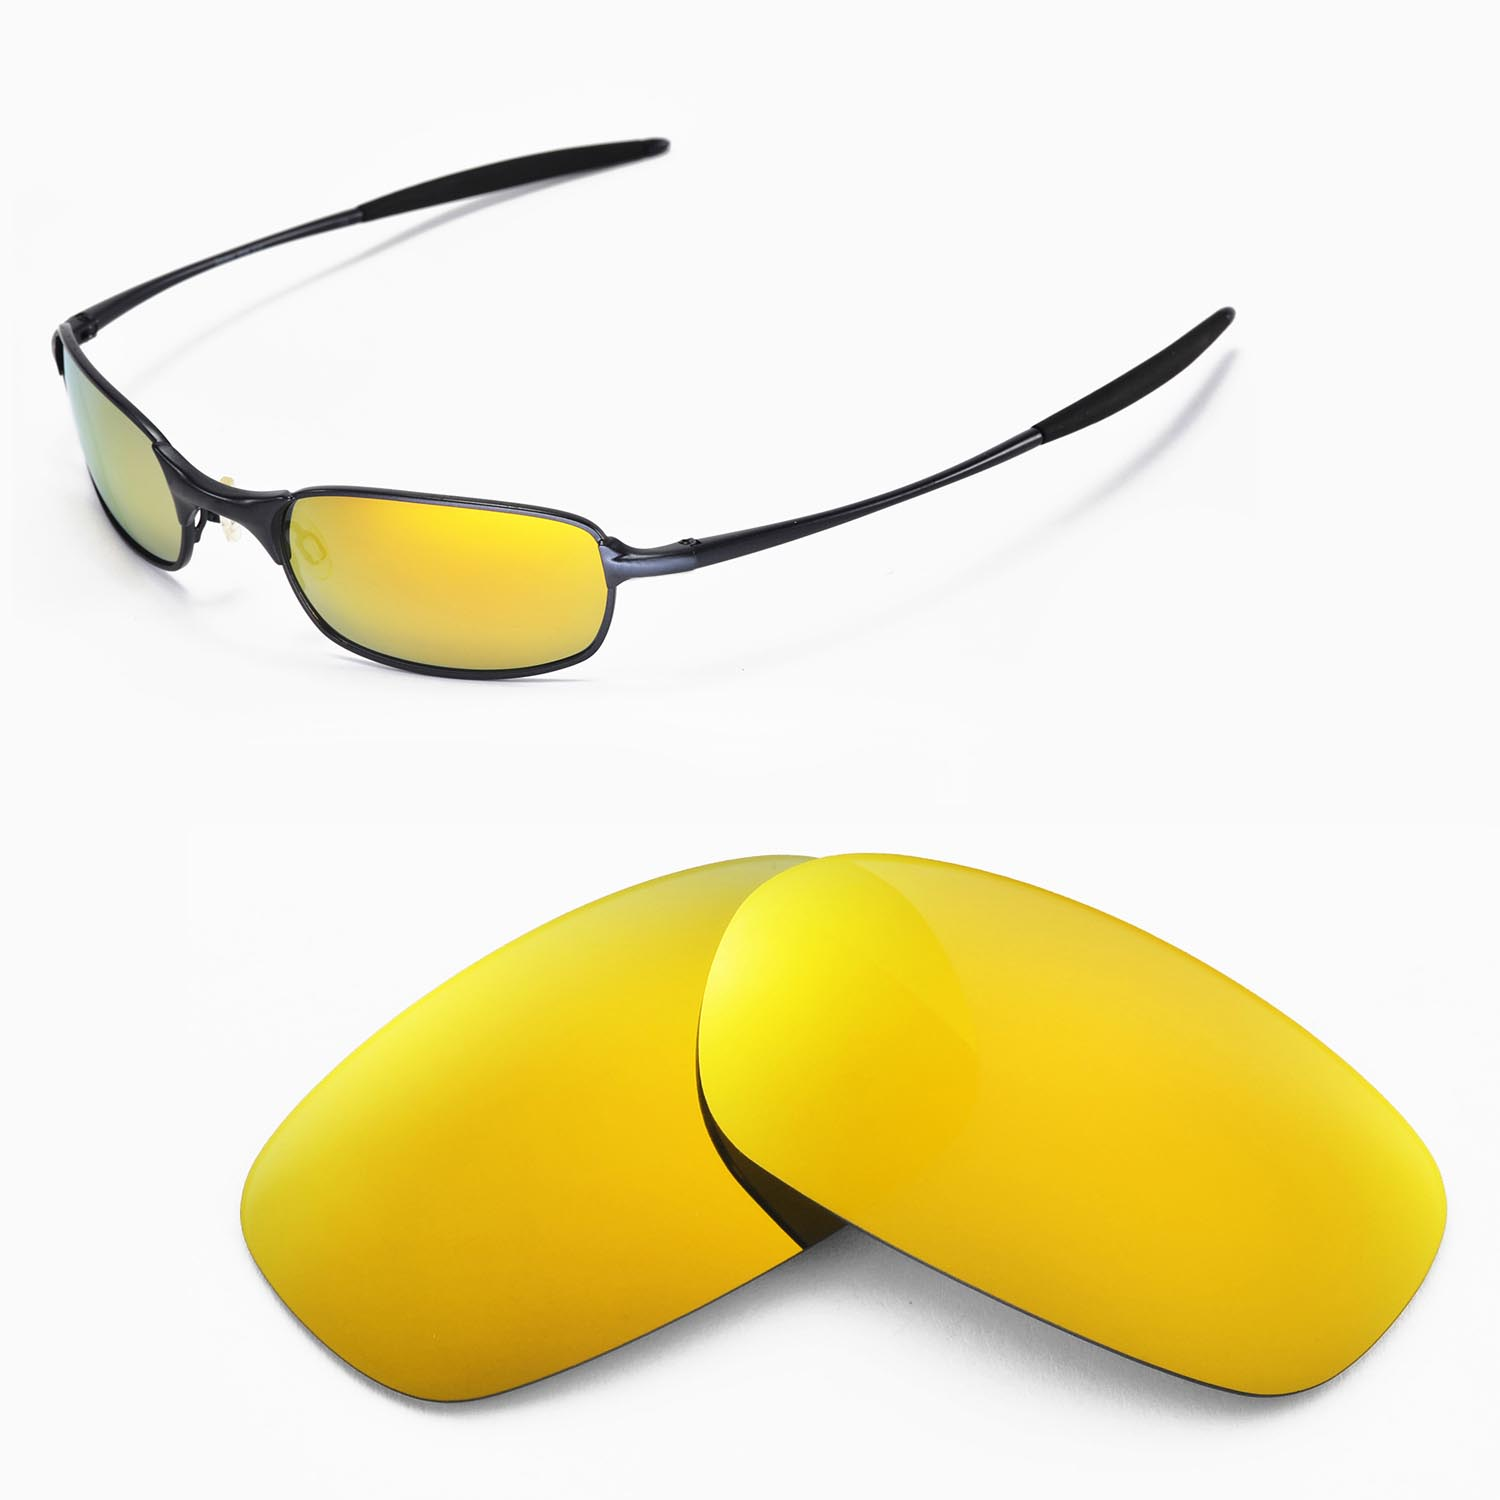 09f459b565bd0 Details about New Walleva Polarized 24K Gold Replacement Lenses For Oakley  Square Wire 2.0